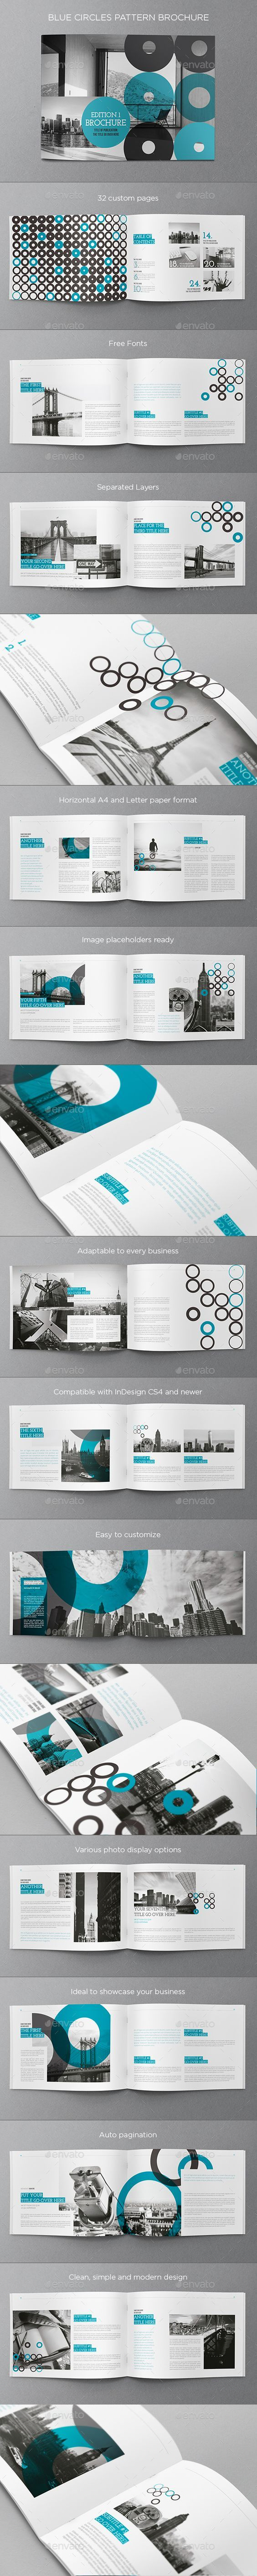 Blue Circles Pattern Brochure Template InDesign INDD #design Download: http://graphicriver.net/item/blue-circles-pattern-brochure/14060572?ref=ksioks: